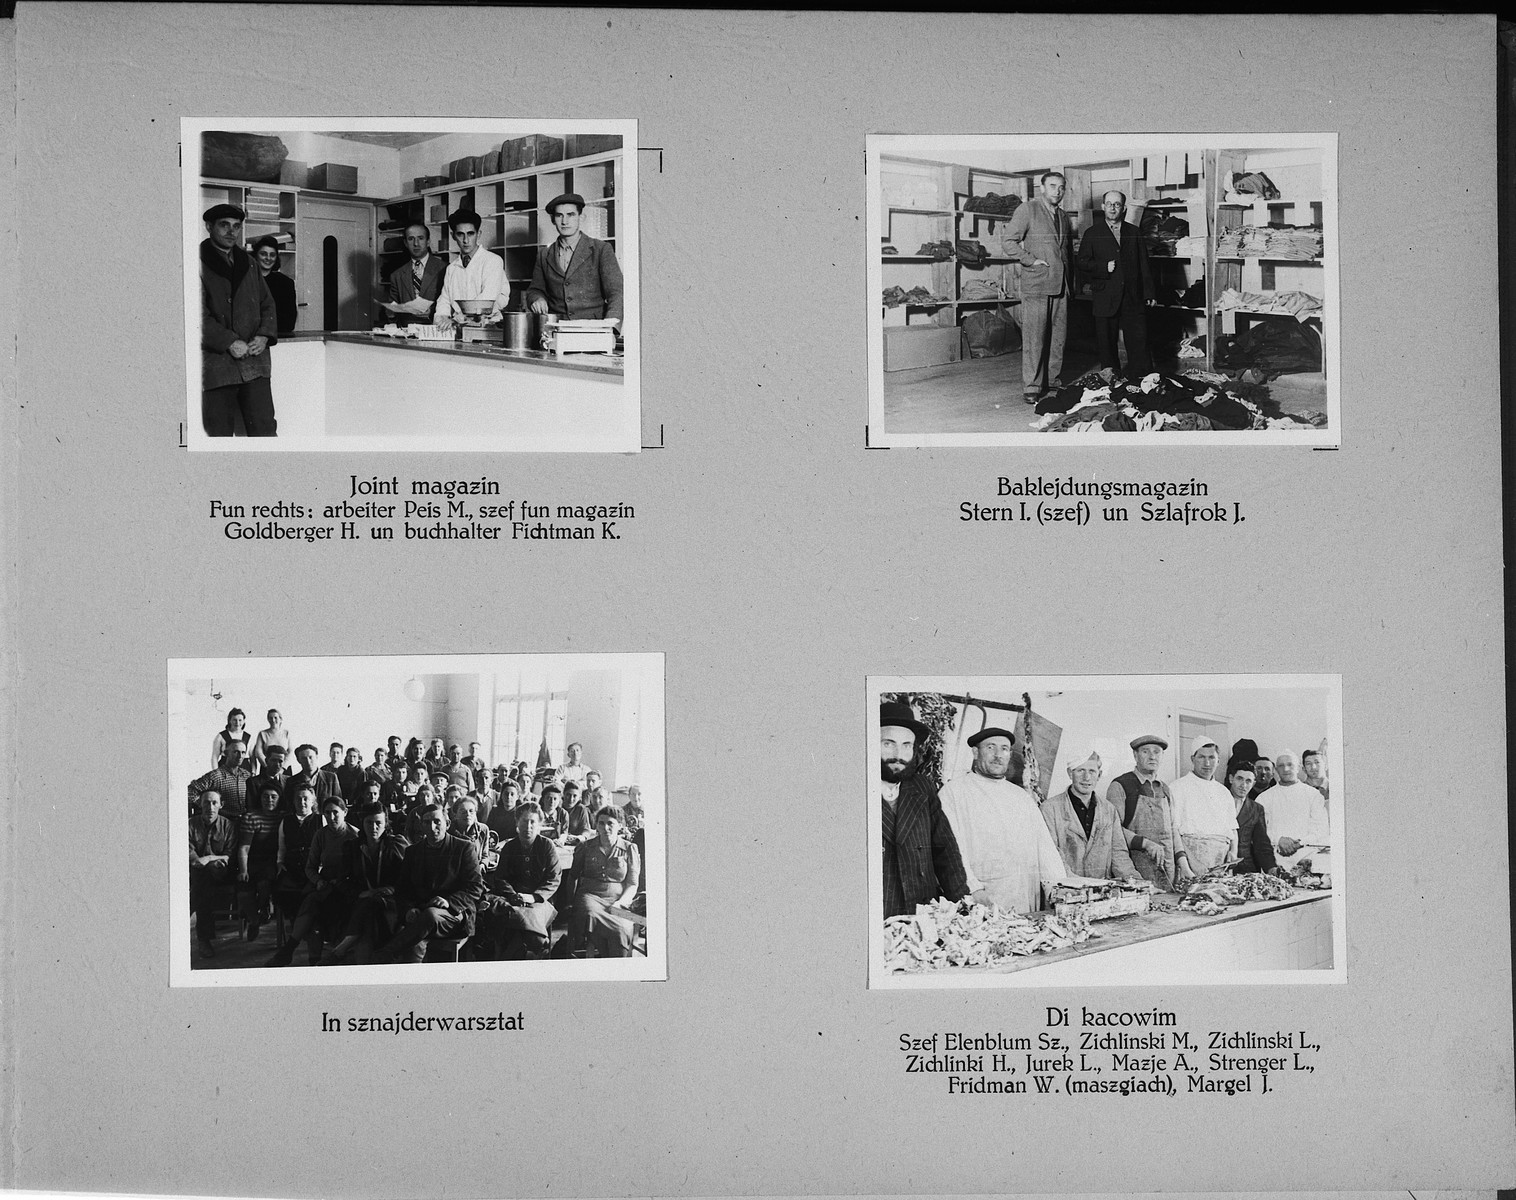 Page from a photo album of the Wasseralfingen DP camp showing the camp's storerooms, workshops, and butchers.